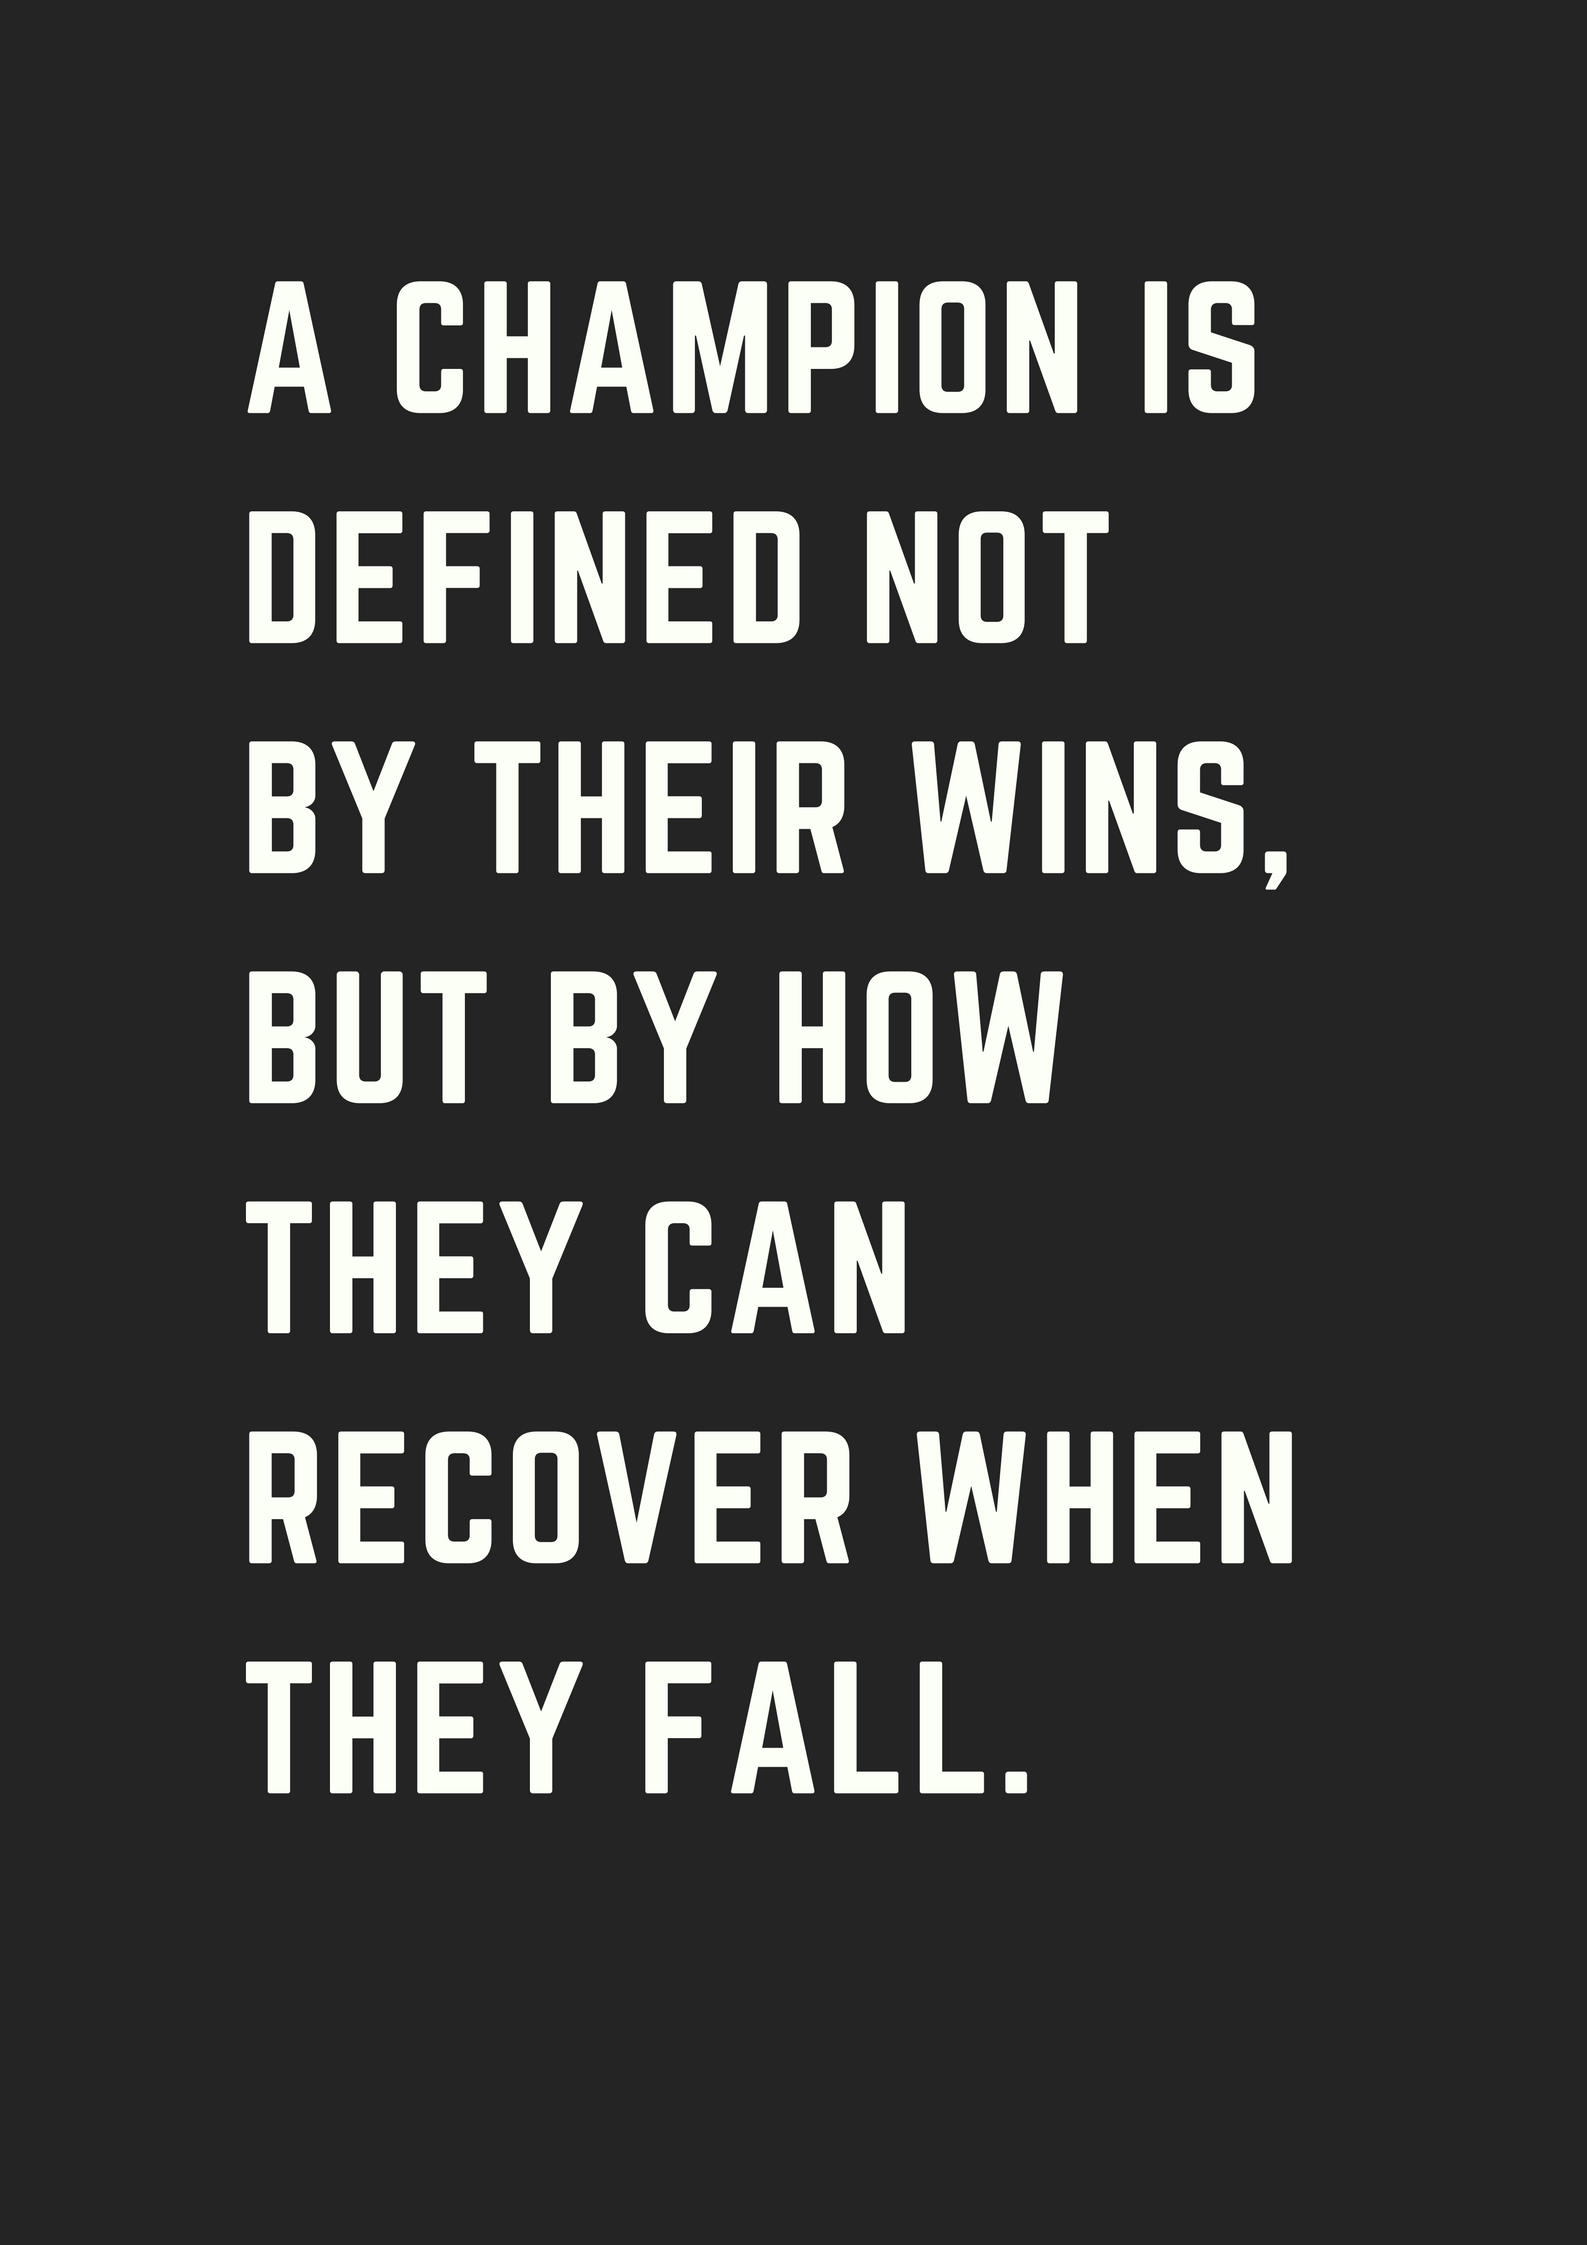 Top 10 Black And White Inspirational Quotes Inspirational Sports Quotes Encouragement Quotes For Men Top Quotes Inspiration